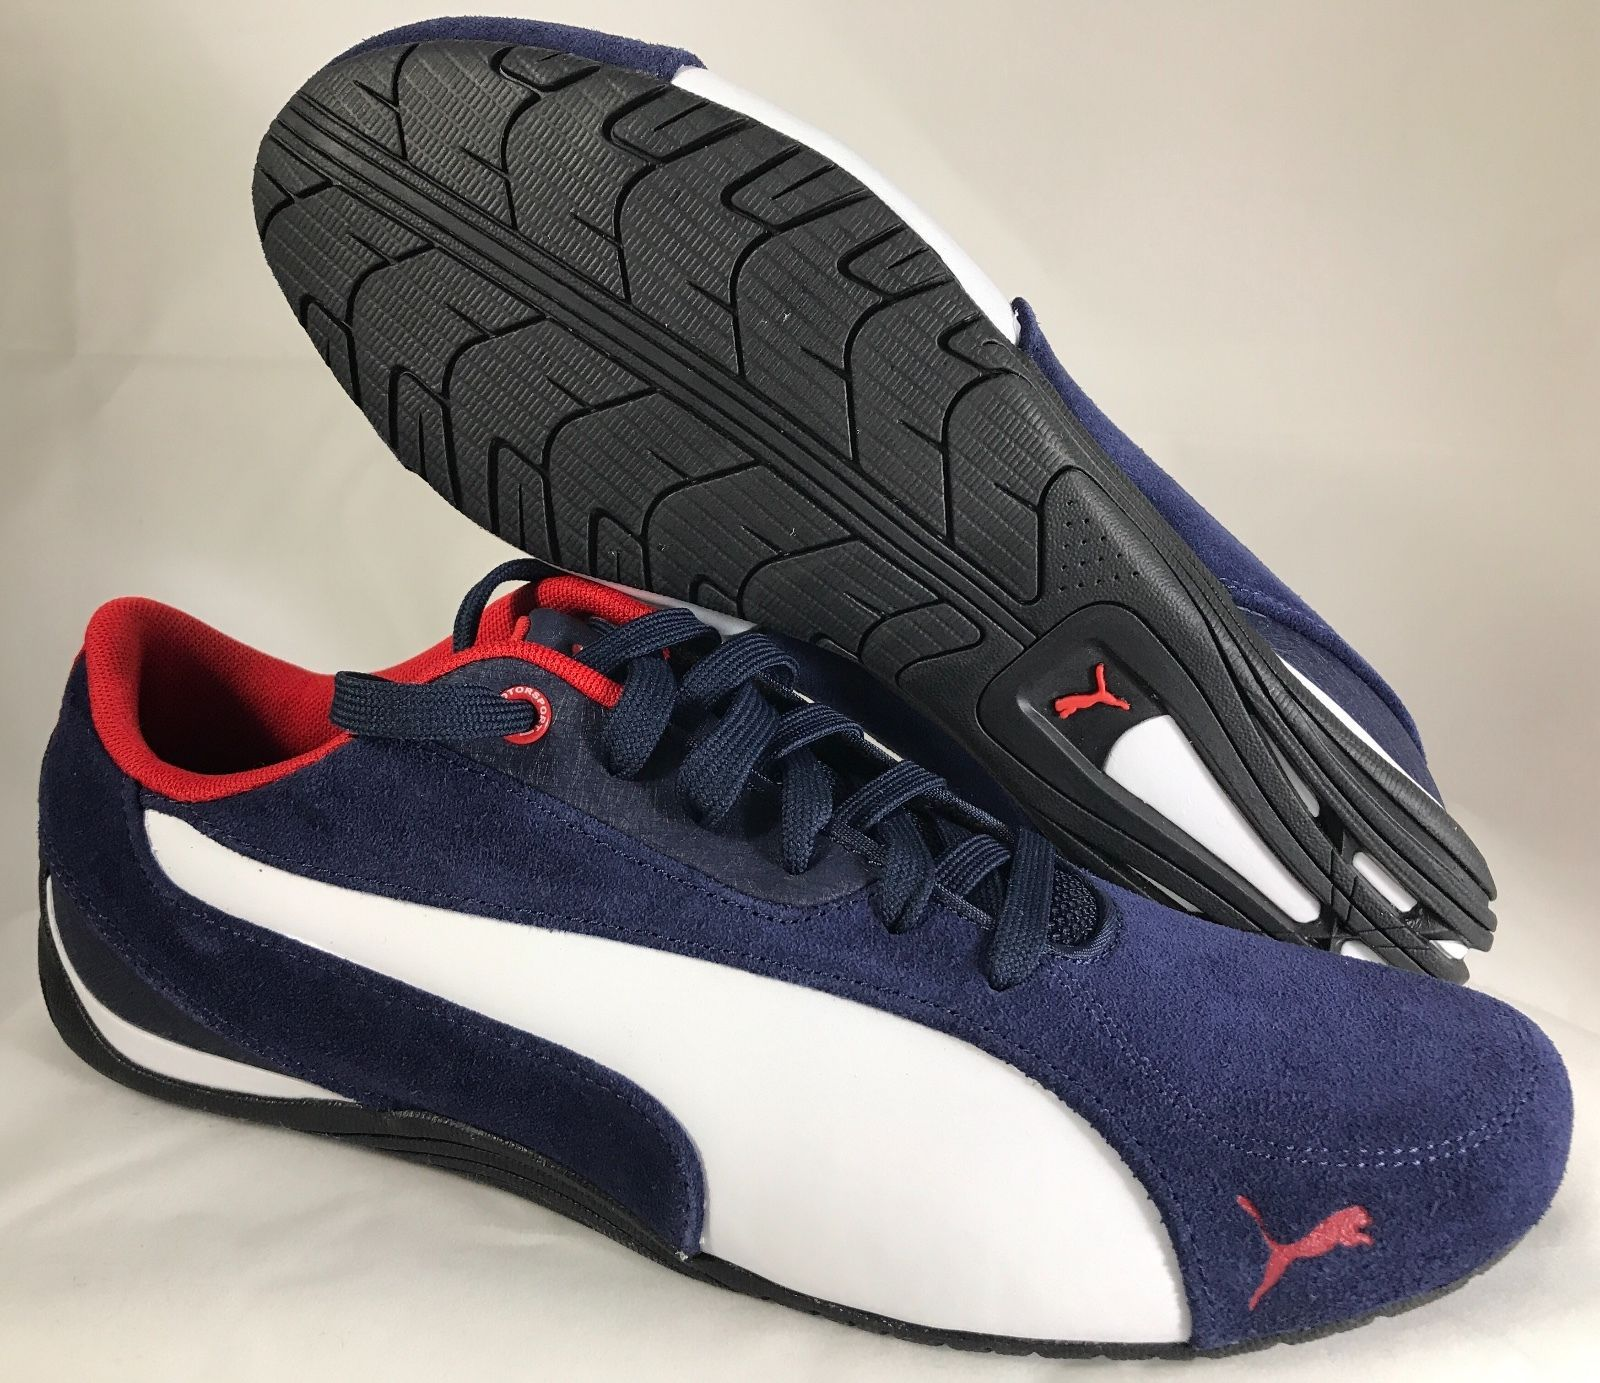 New PUMA Drift Cat 5 NM 2 Mens Shoes Suede Peacoat White Sneakers Motorsport